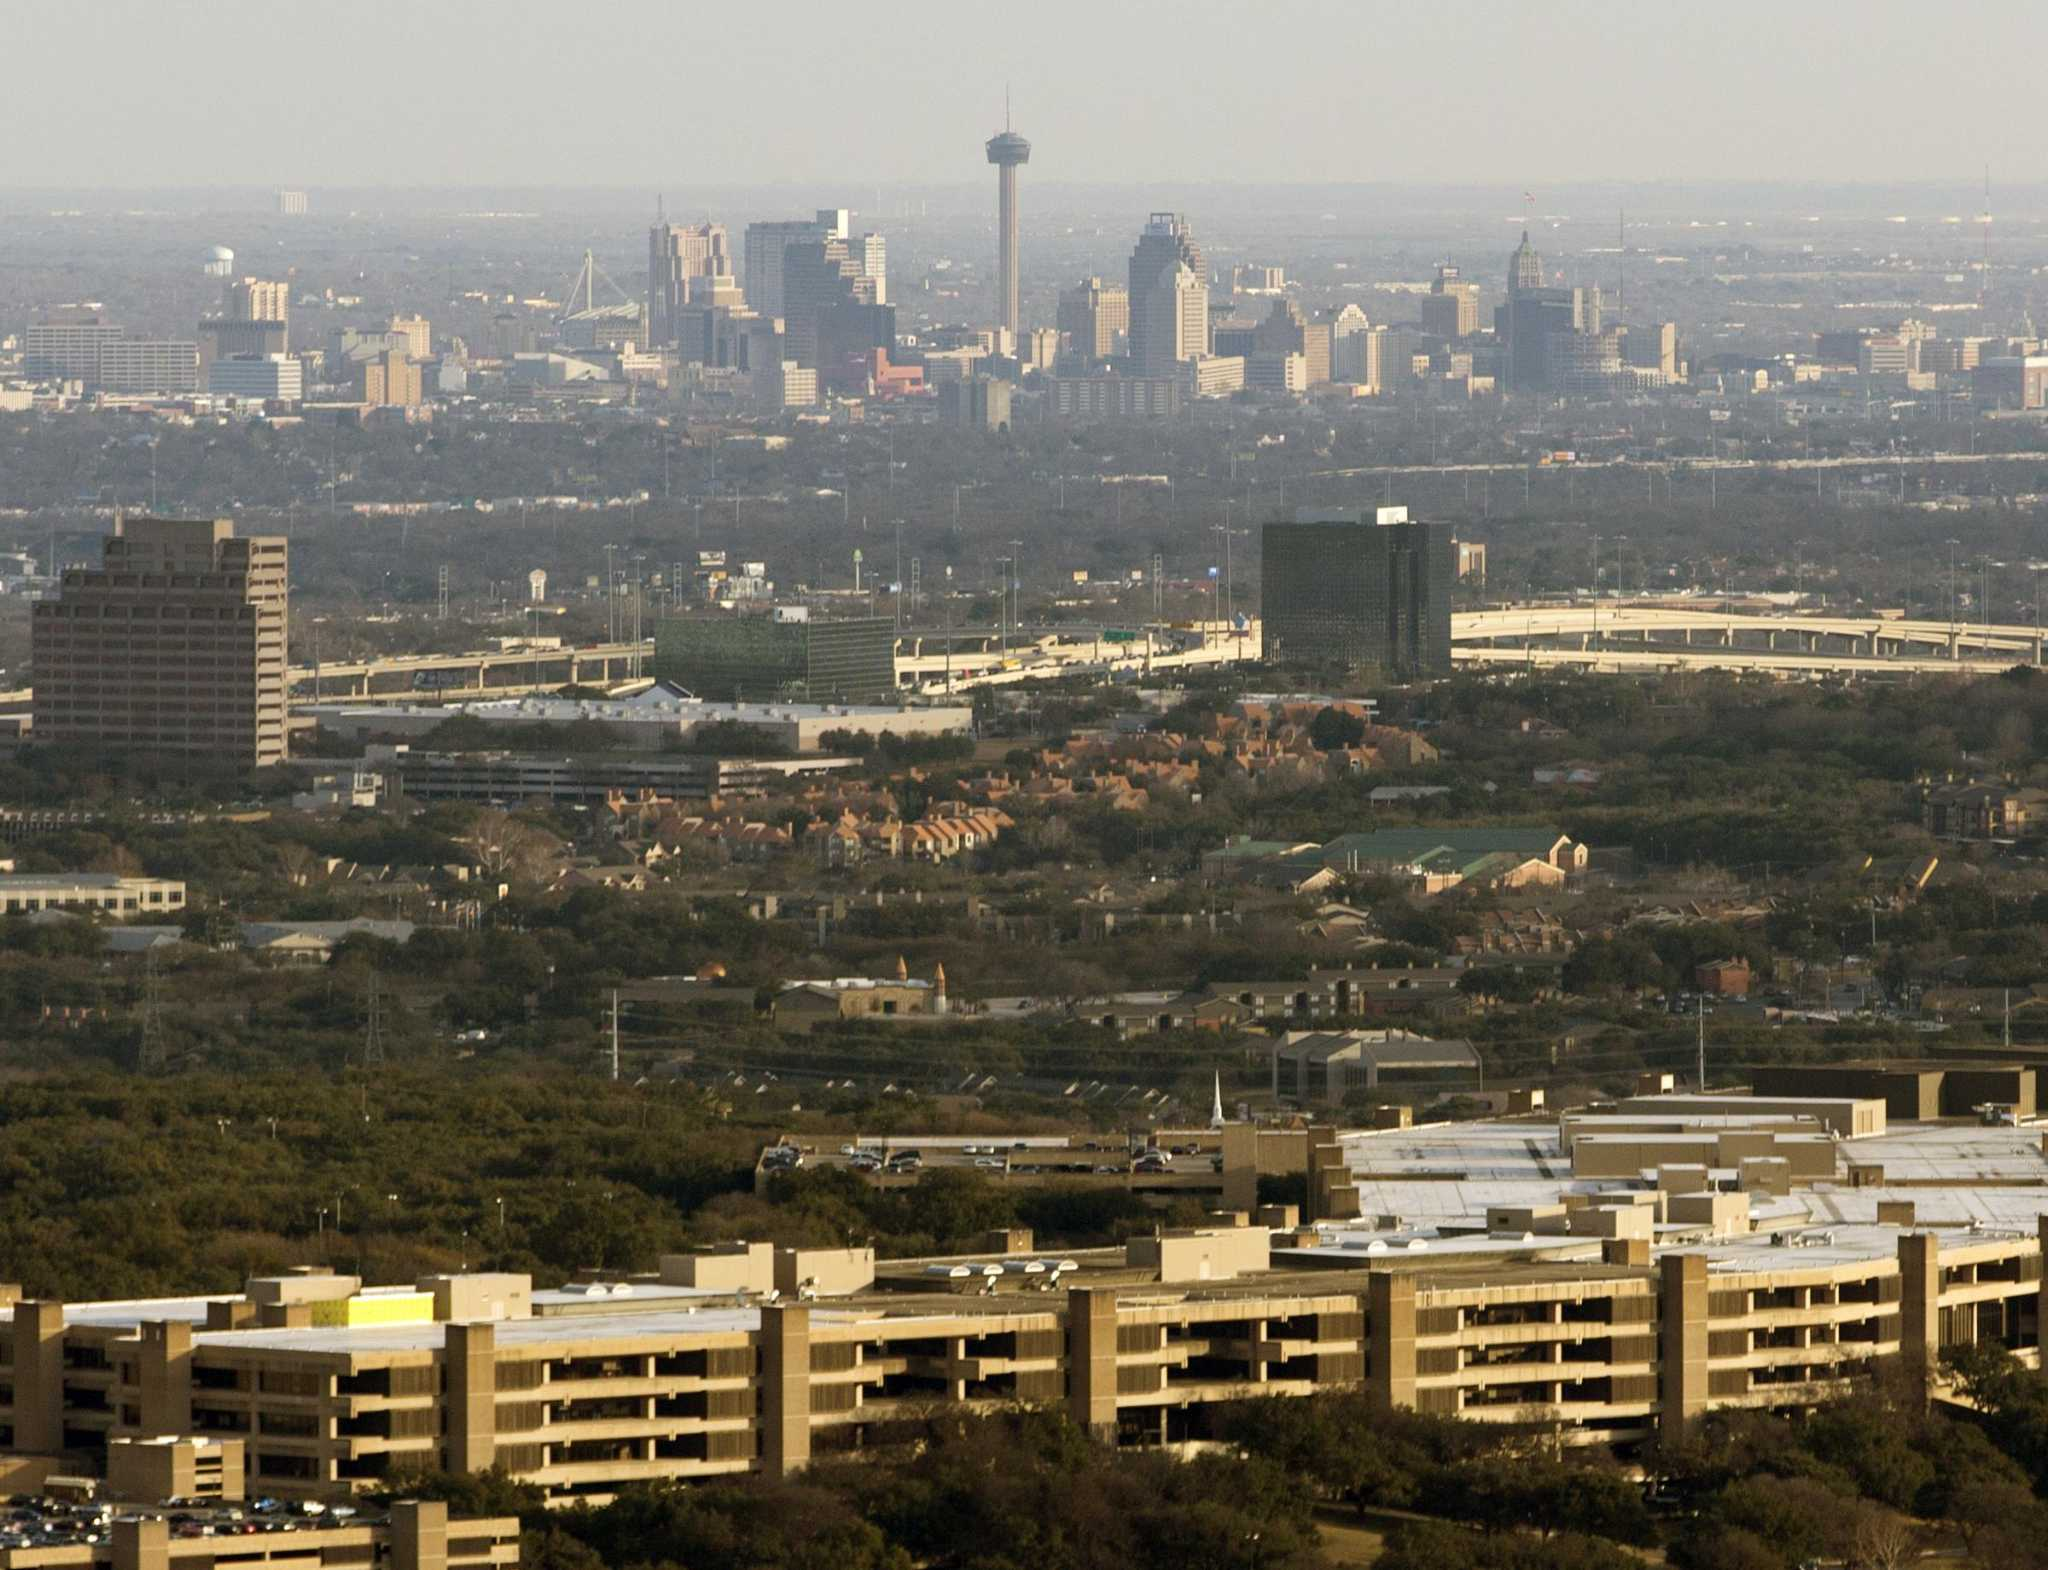 San Antonio's USAA Life Insurance to settle class-action lawsuit on overcharges for  million